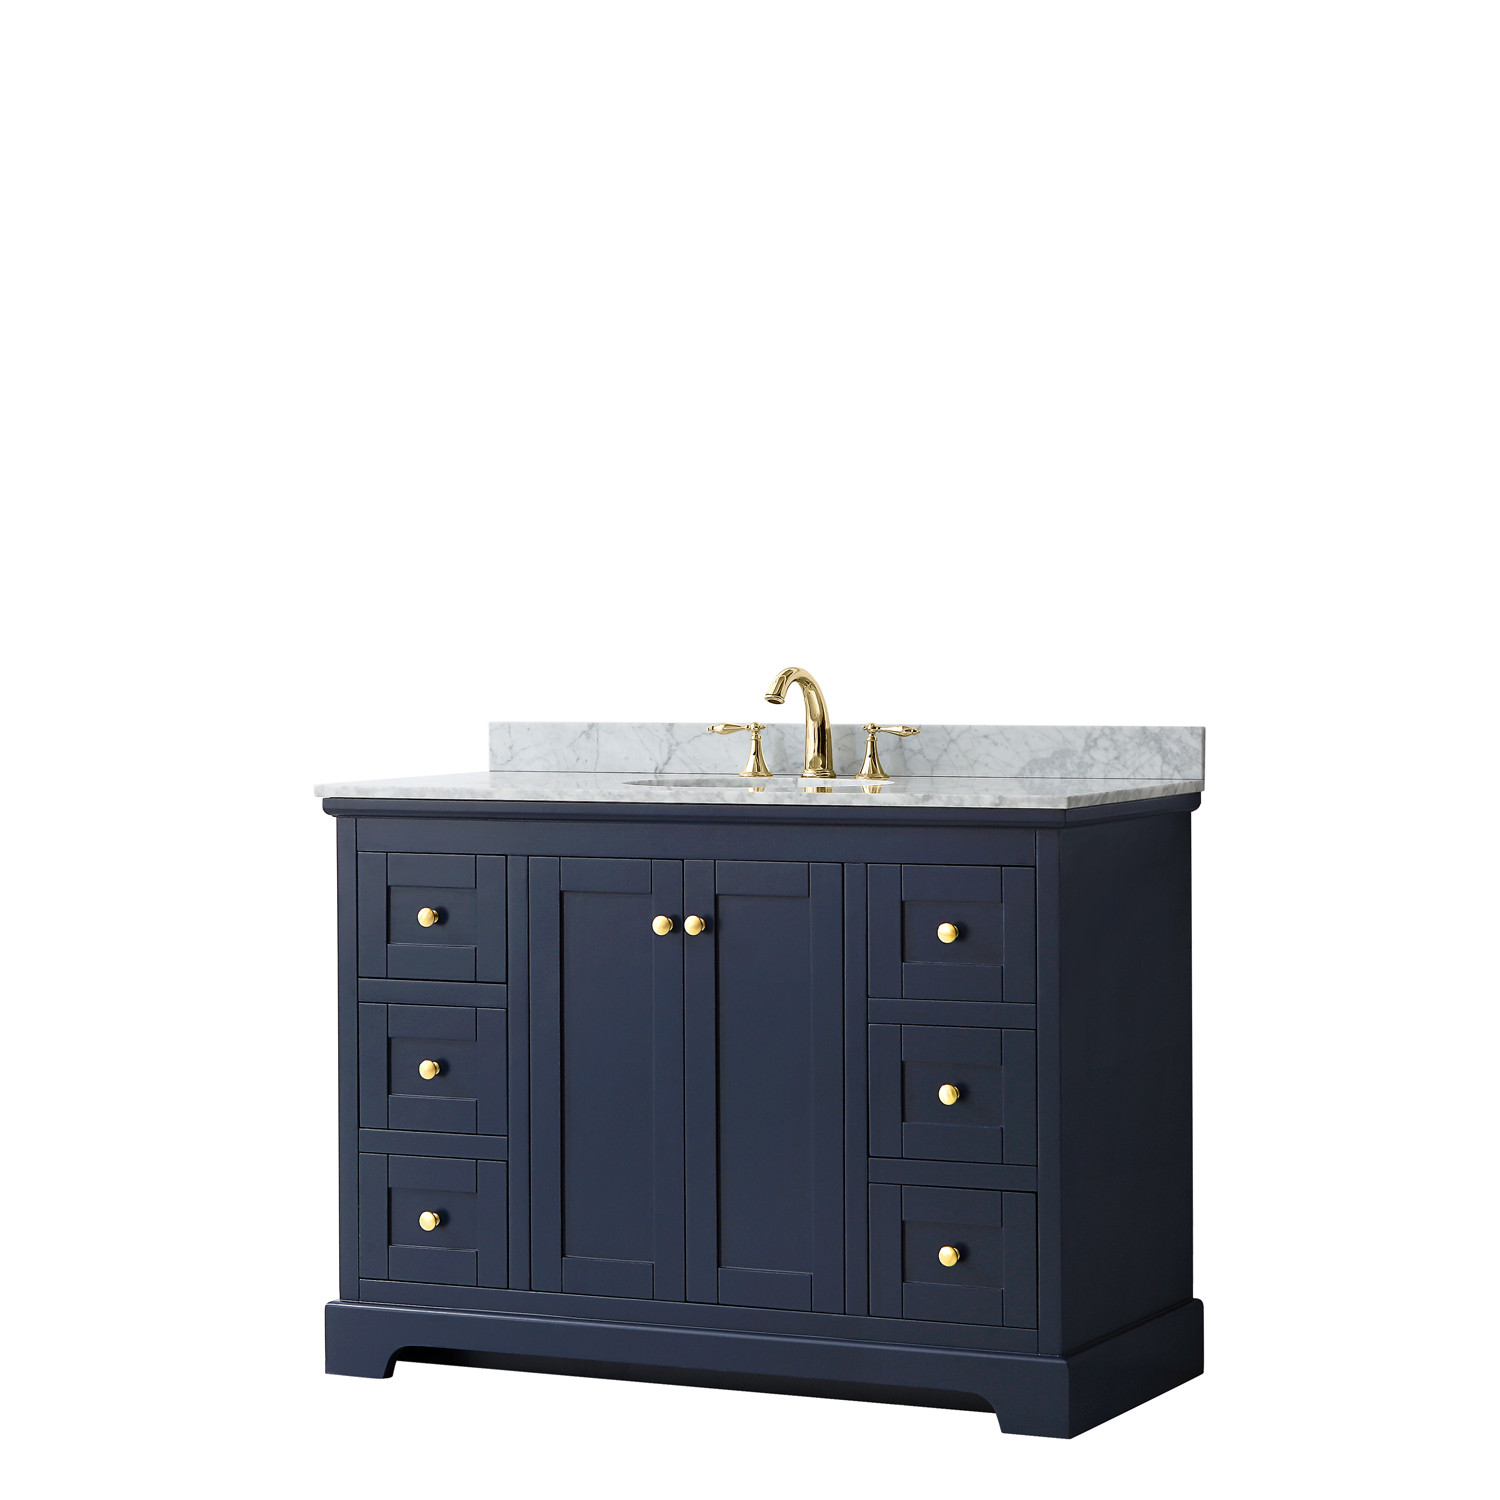 "48"" Single Bathroom Vanity in Dark Blue, No Countertop, No Sink, and No Mirror"